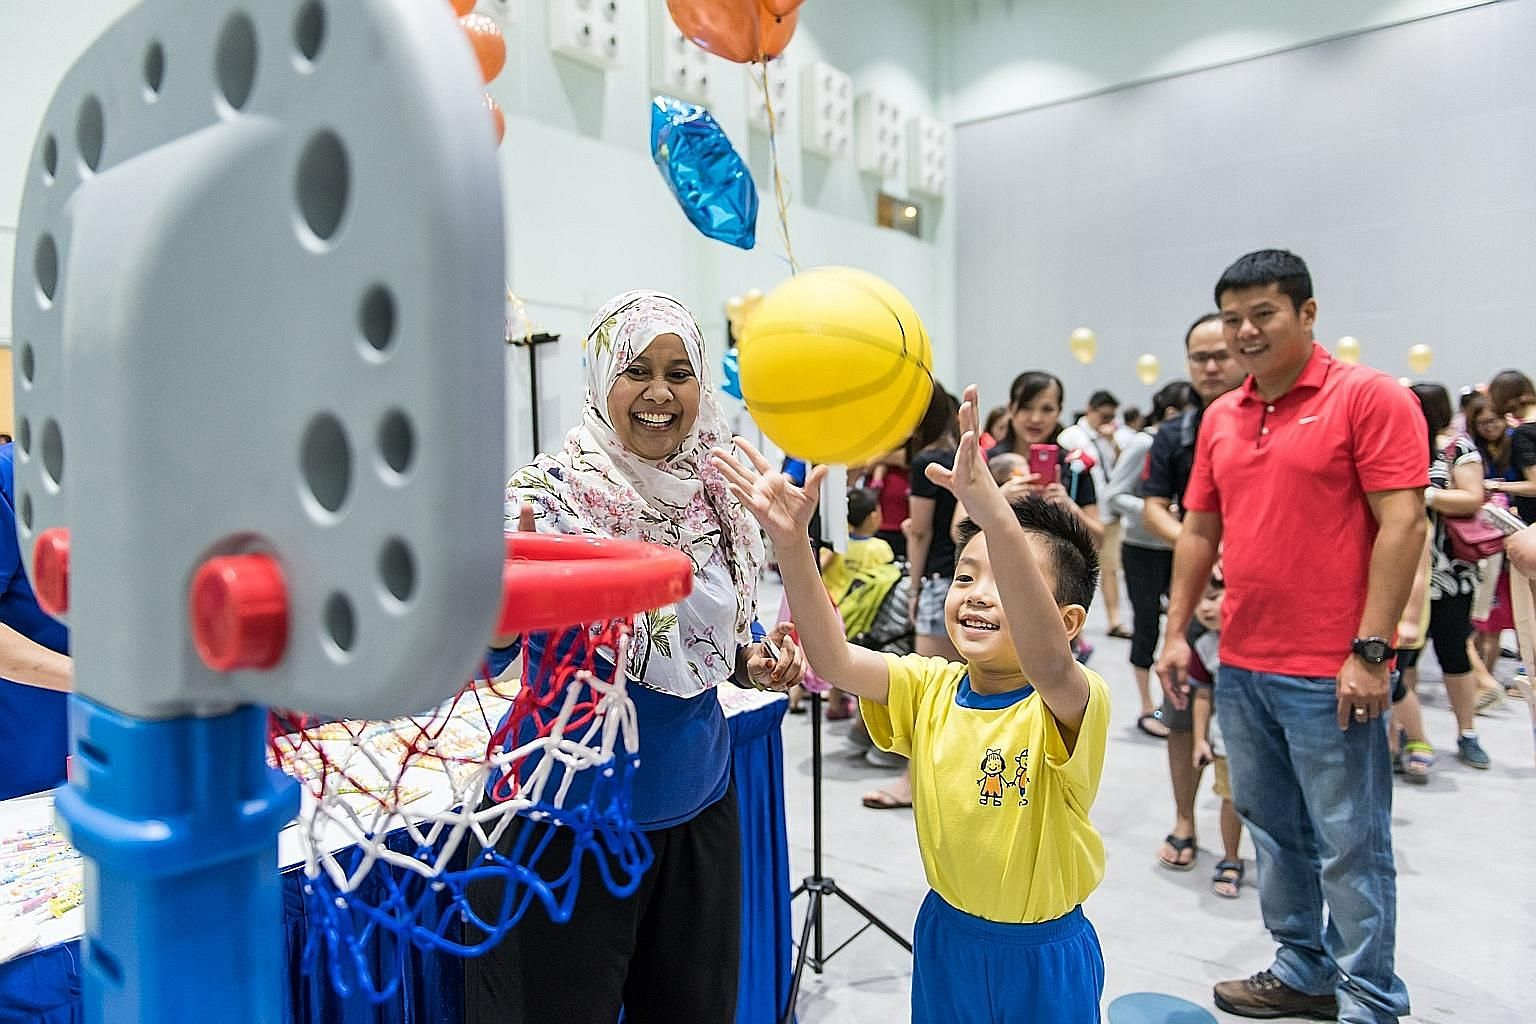 A Star Learners' childcare centre pupil playing at the centre's charity fun fair in July. The event raised $15,000 for The Straits Times School Pocket Money Fund.